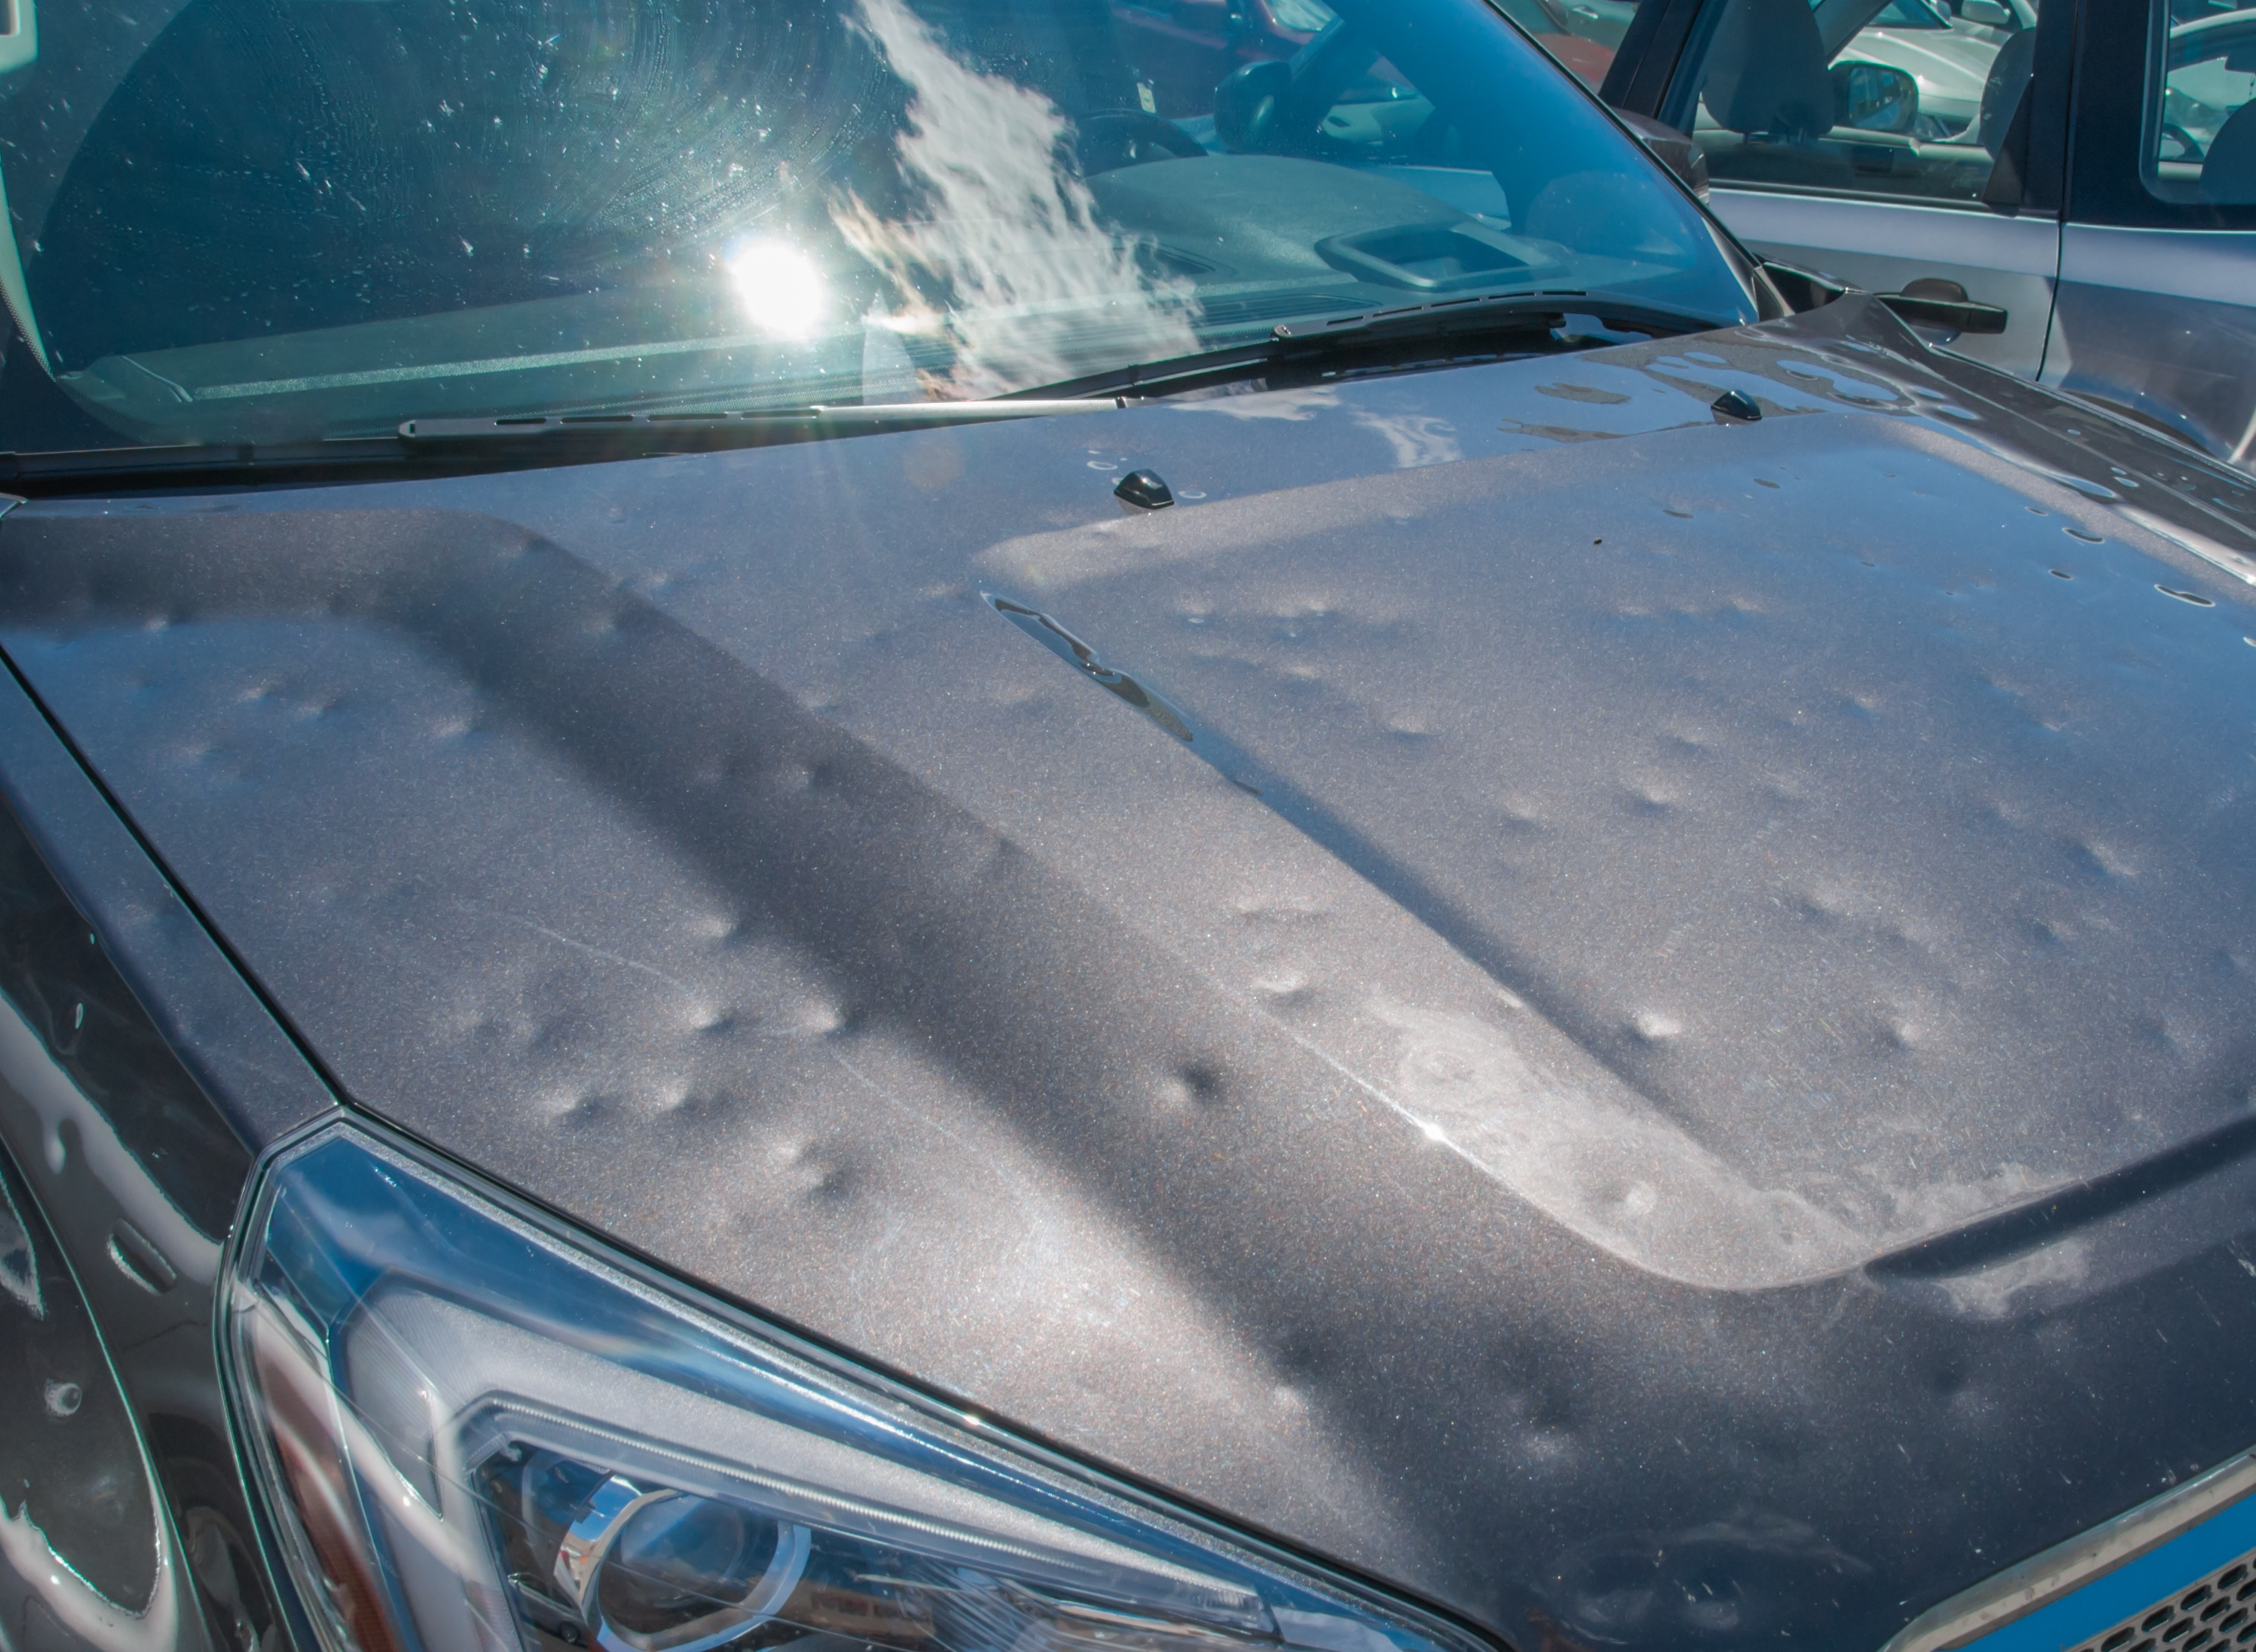 Hood of a car riddled with dents.